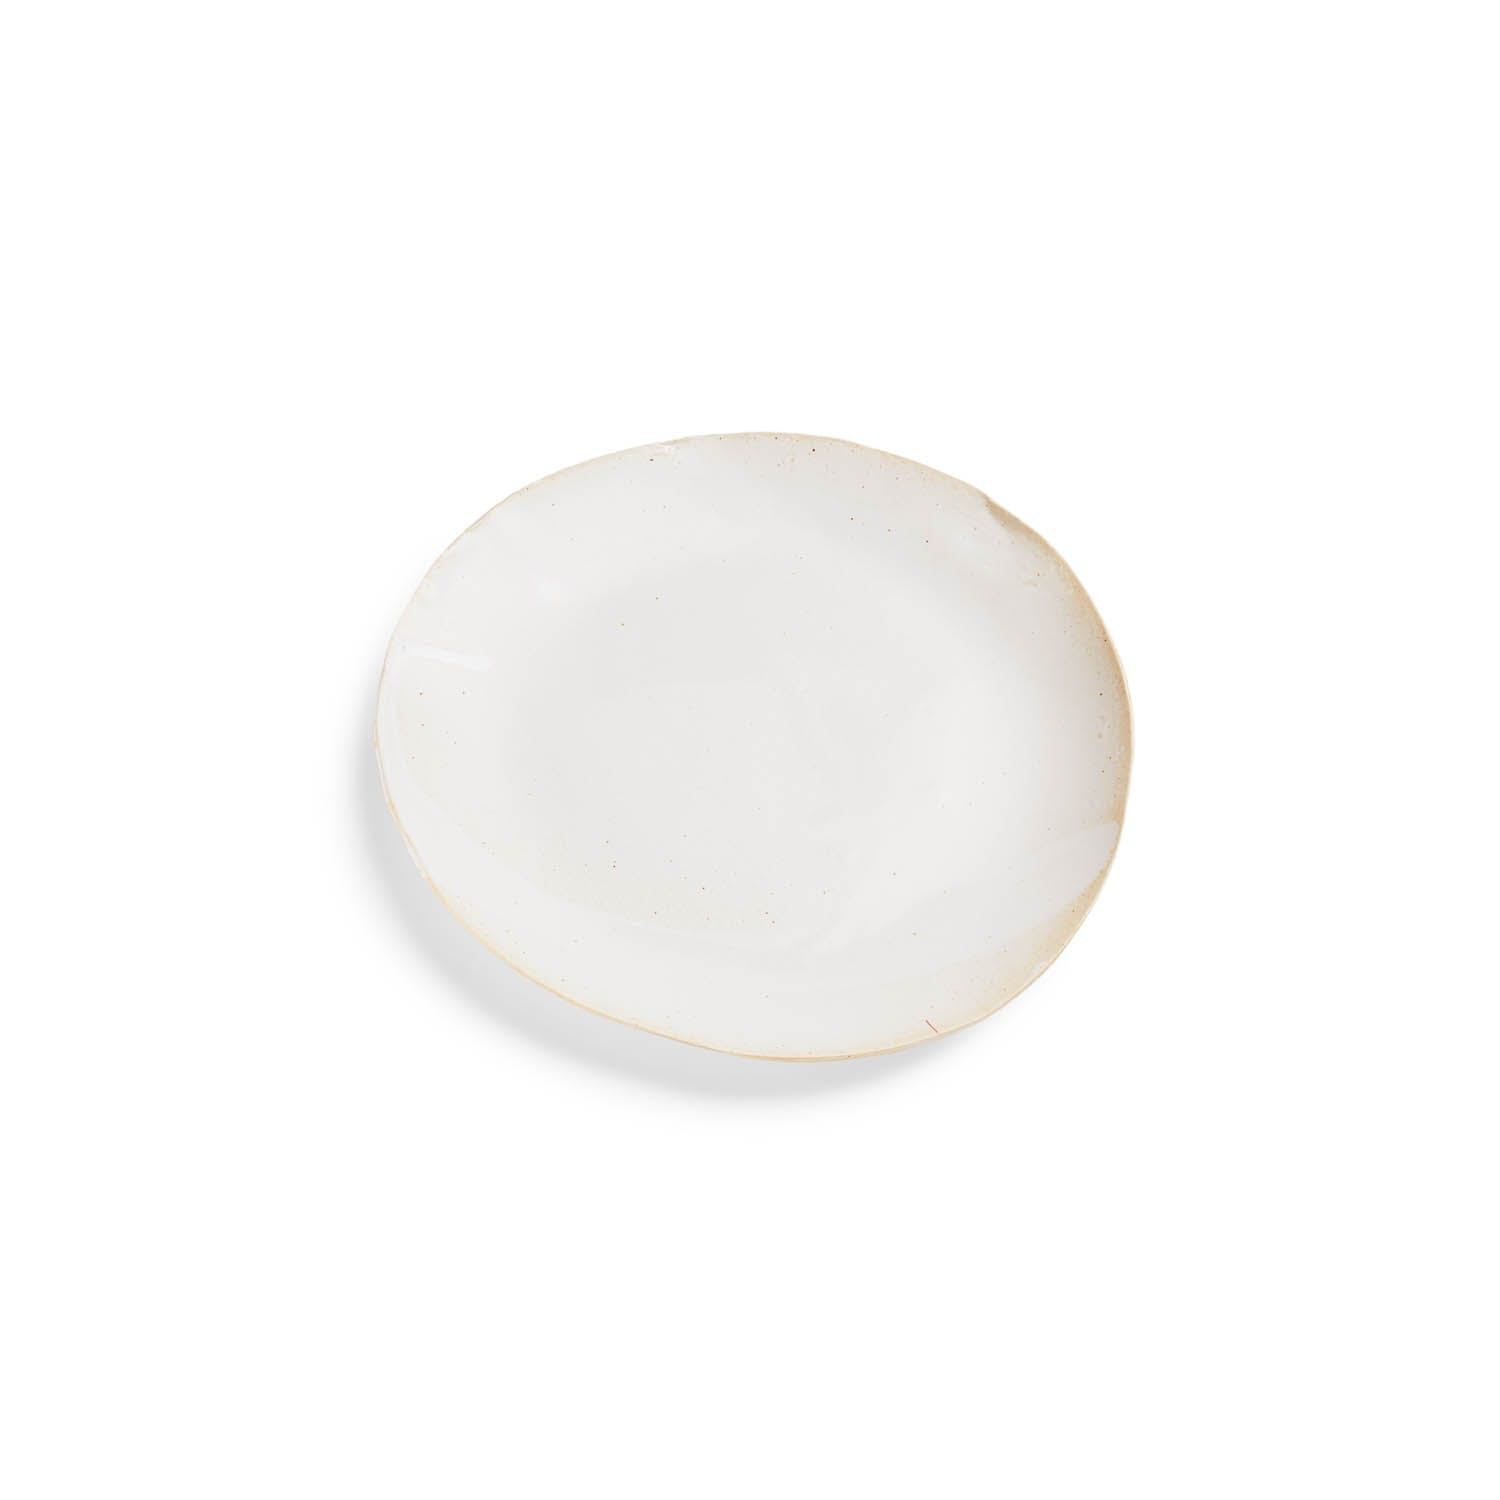 Product Image - Jan Burtz Porcelain Dinner Plate